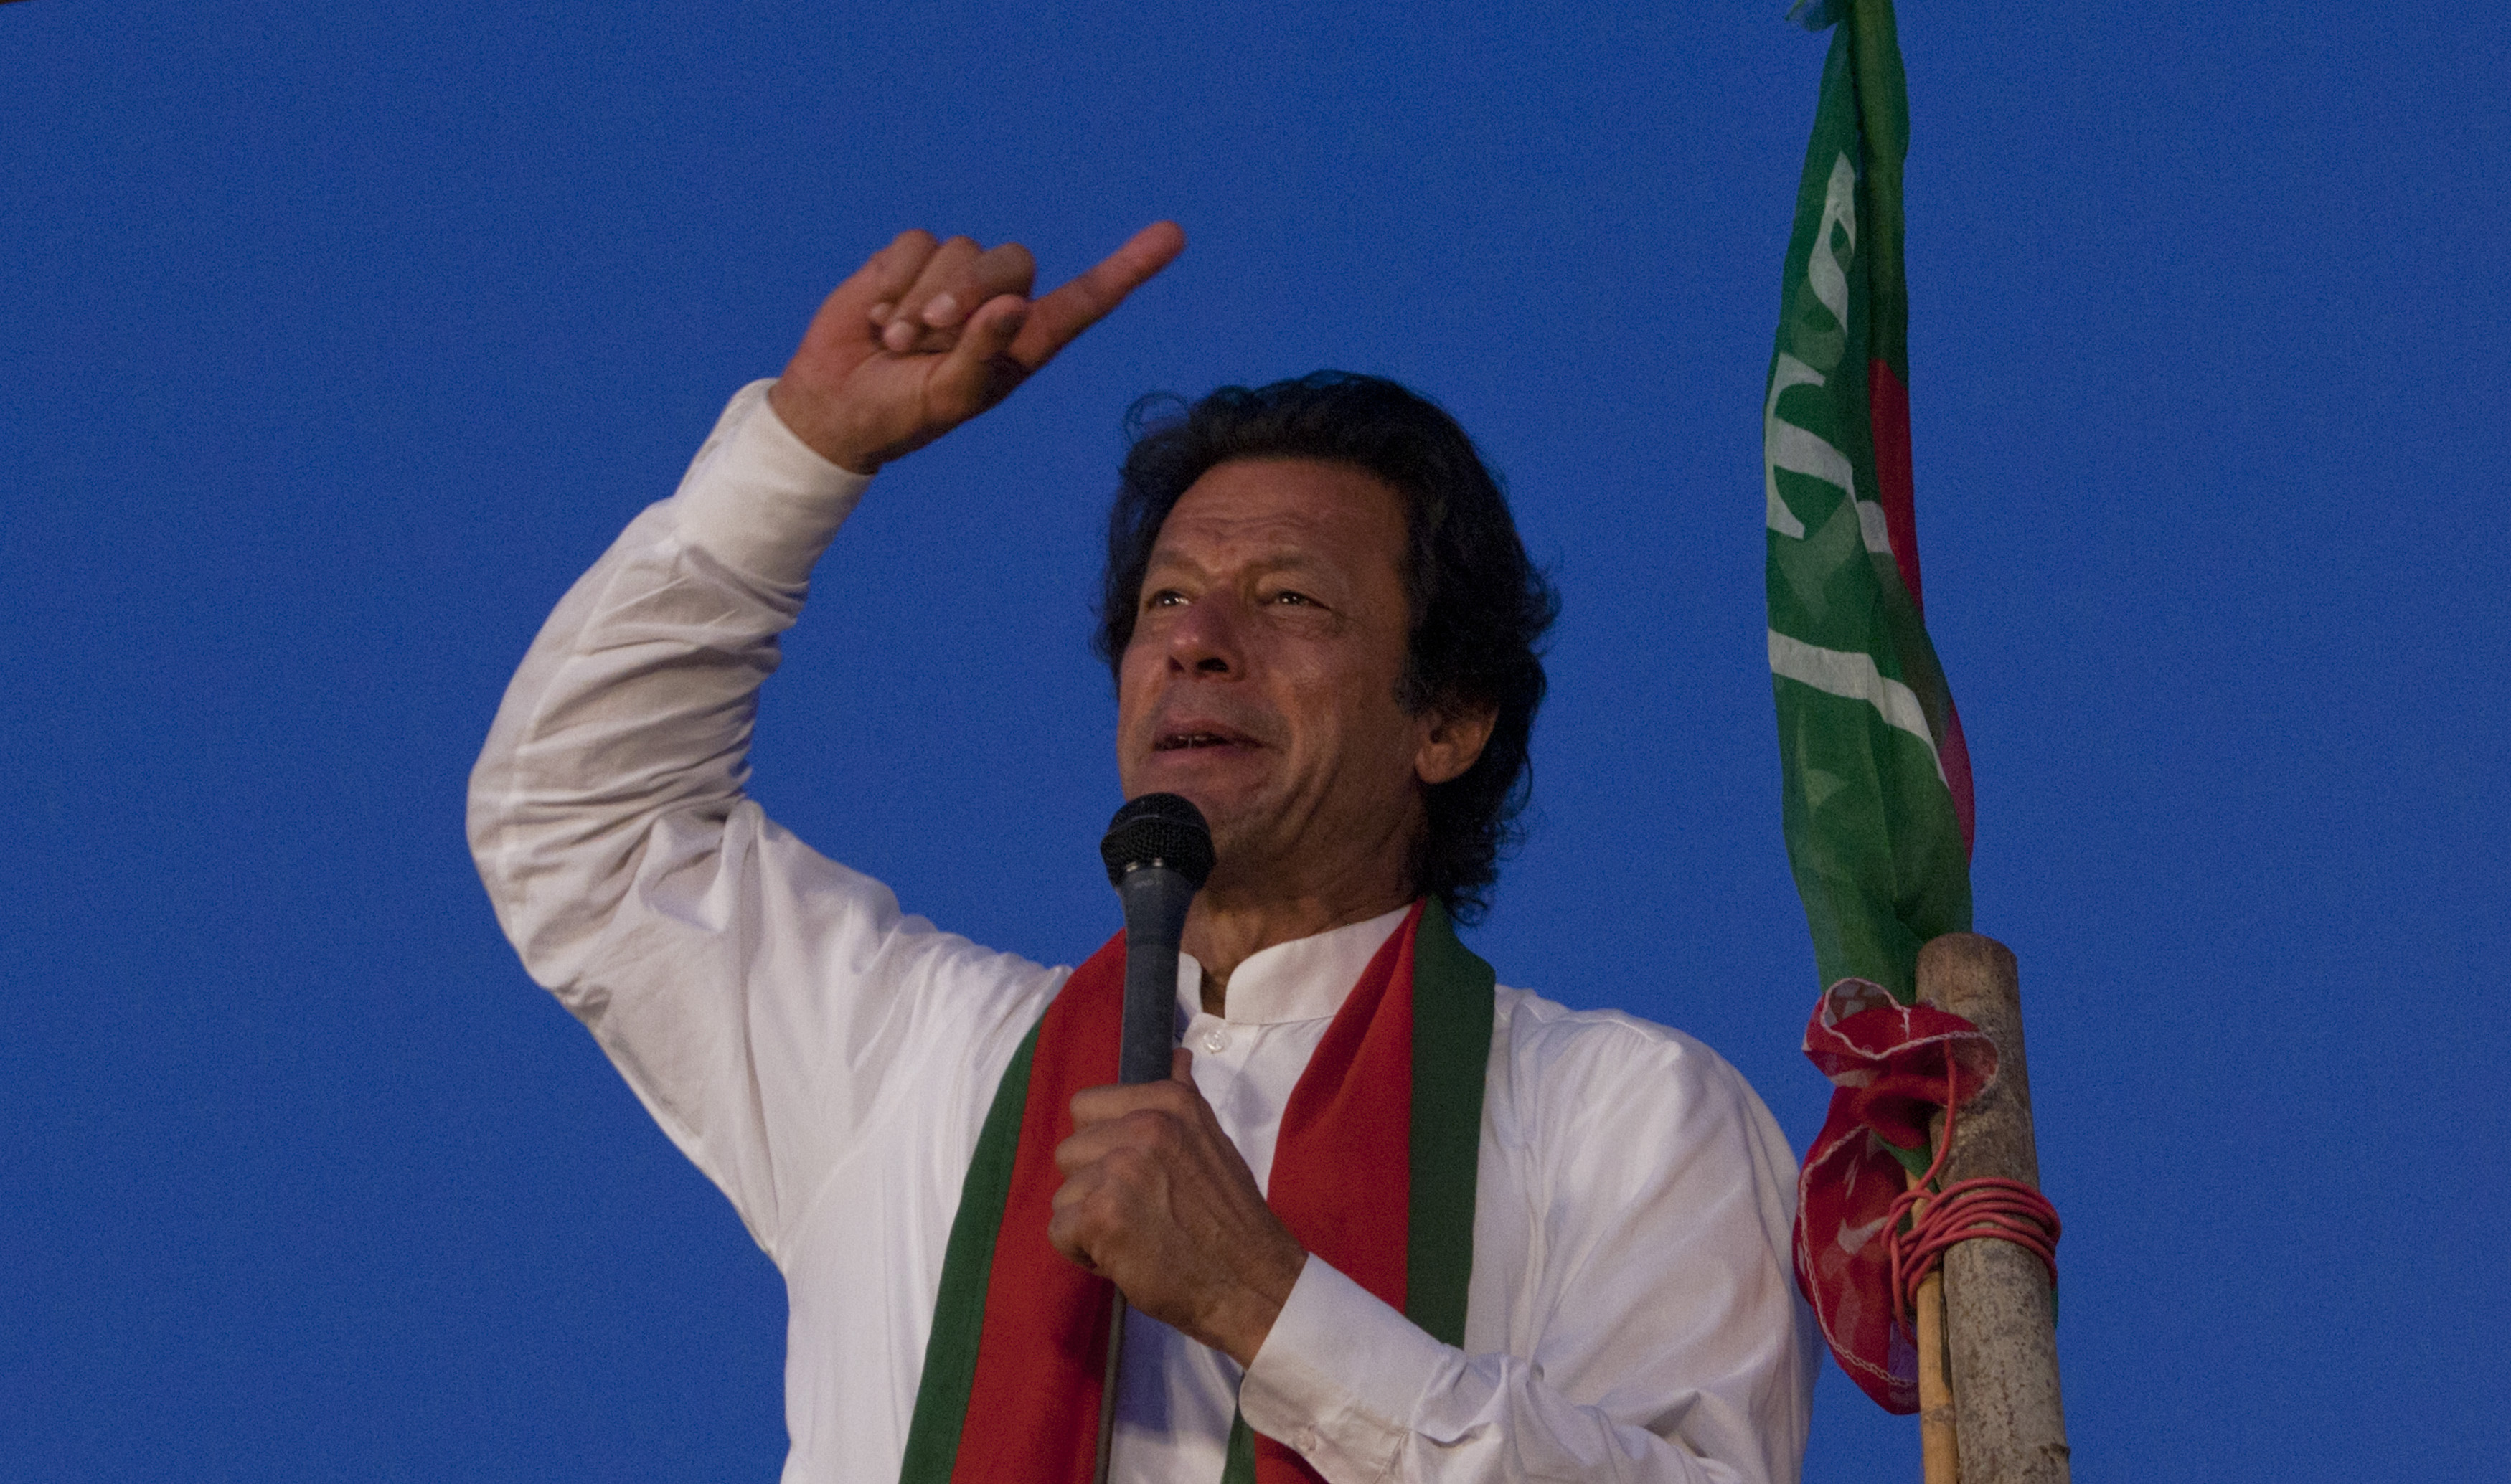 Pakistani cricketer turned politician Imran Khan, leader of the Pakistan Tehreek-e-Insaf party, addresses his supporters during antigovernment protests near the Prime Minister's residence in Islamabad on Sept. 2, 2014